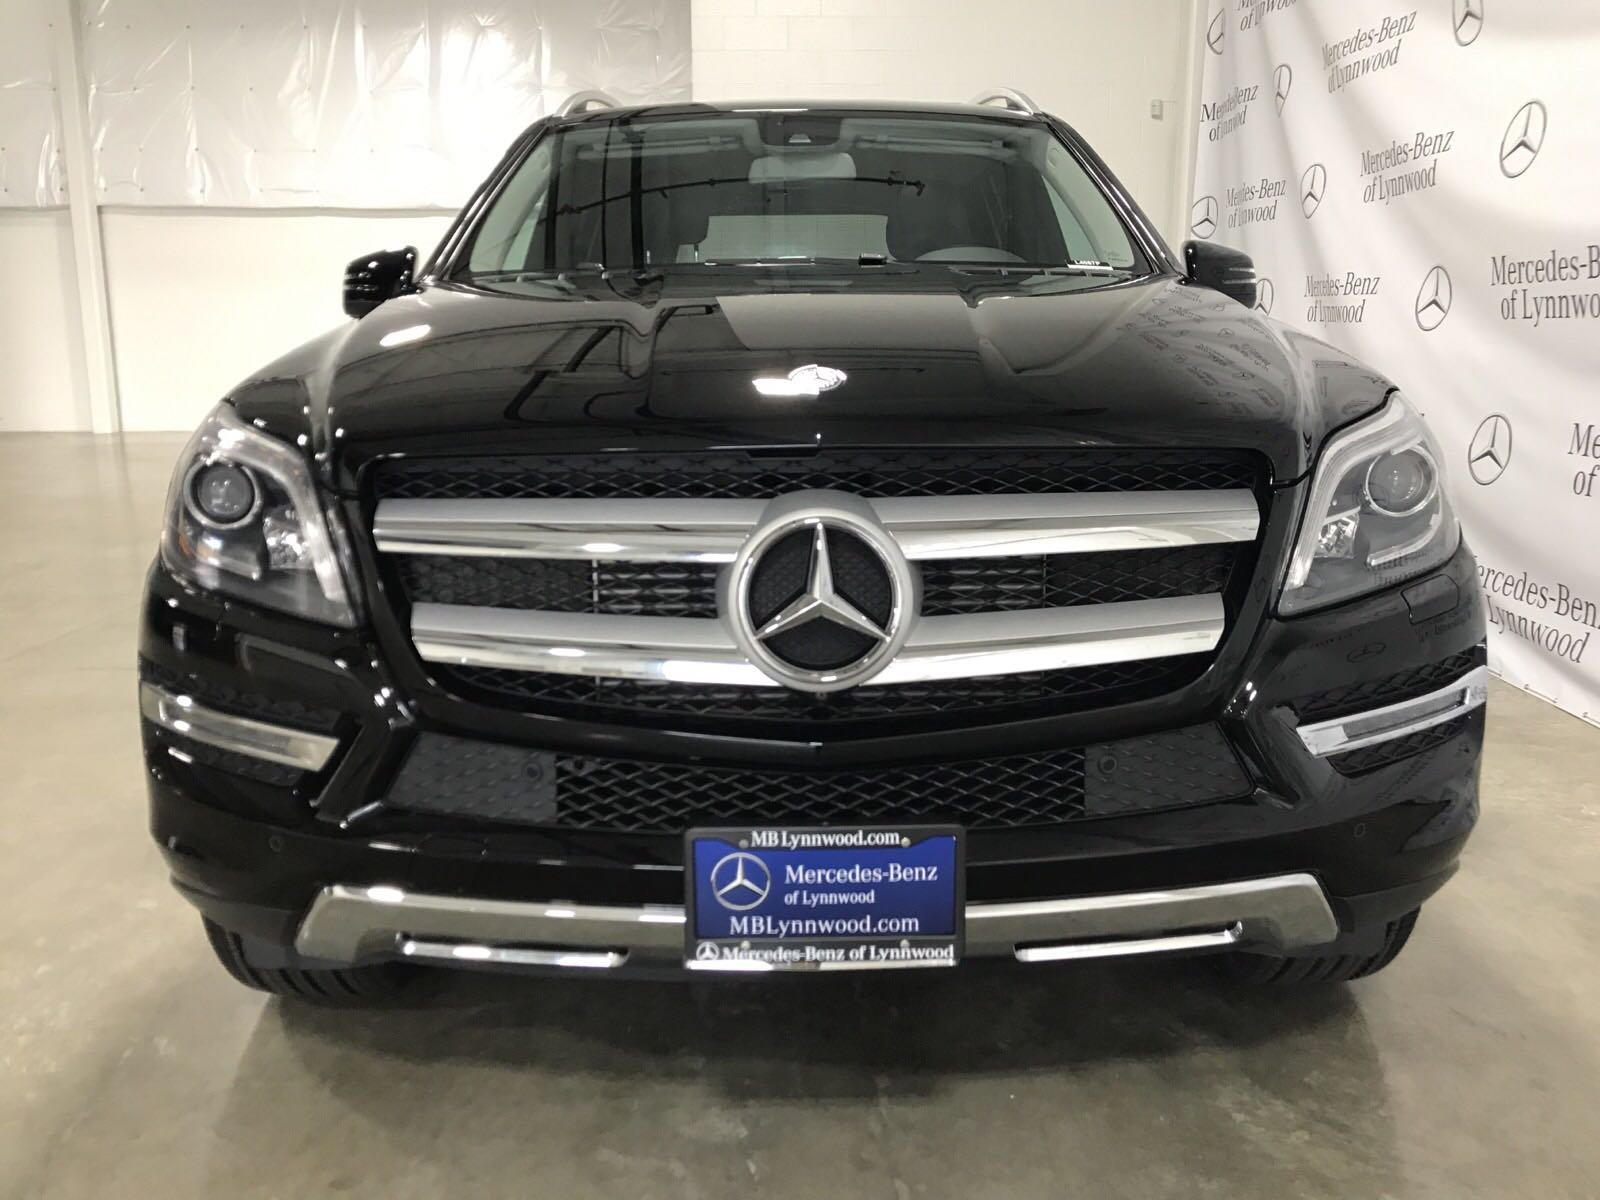 Certified Pre Owned 2015 Mercedes Benz GL Class GL 350 BlueTEC